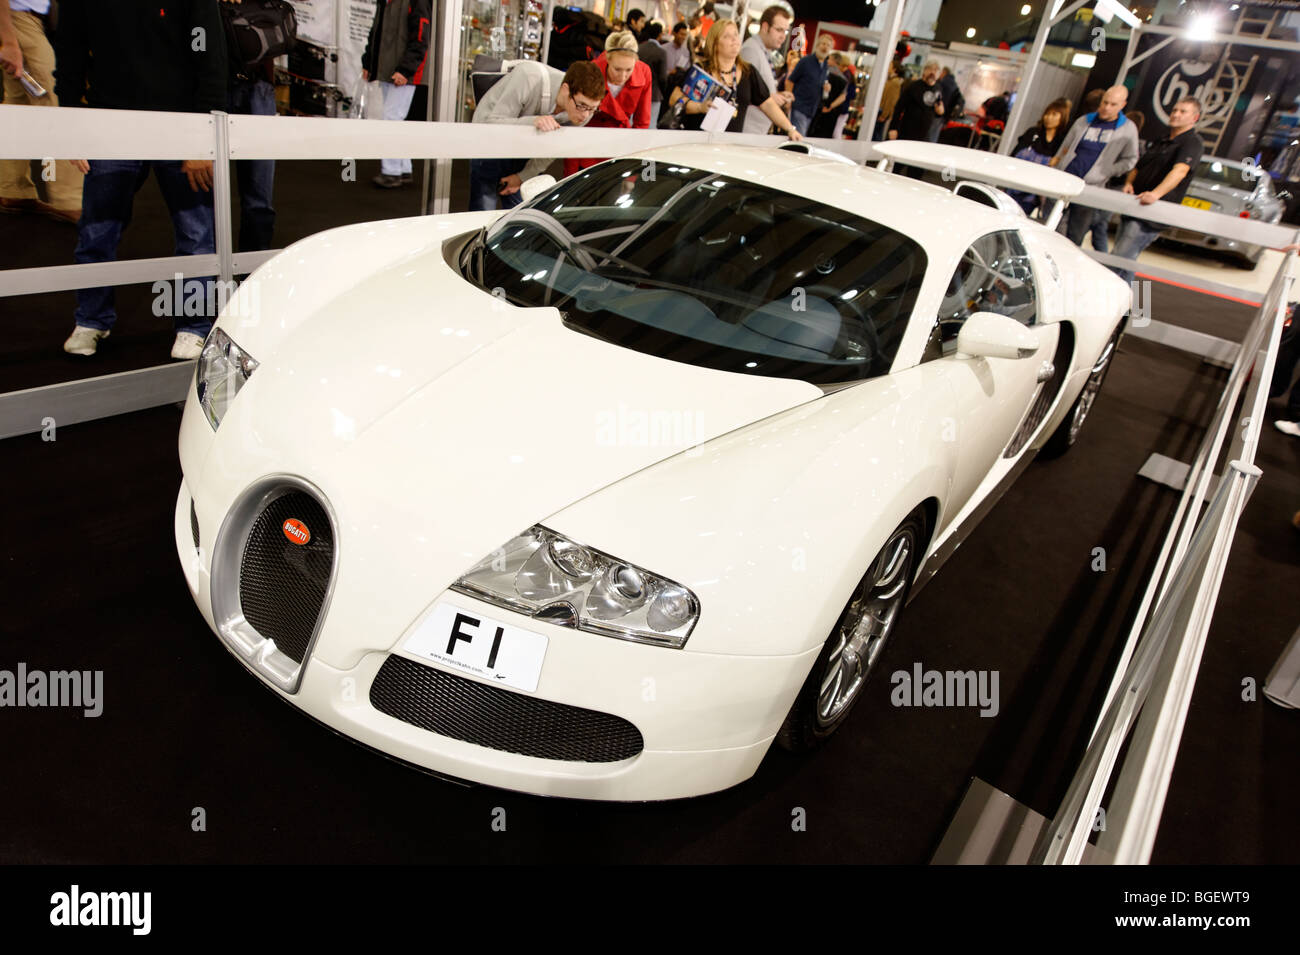 Worldsu0027s Most Expensive Bugatti Veyron Super Car. The F1 Number Plate Alone  Was Sold For